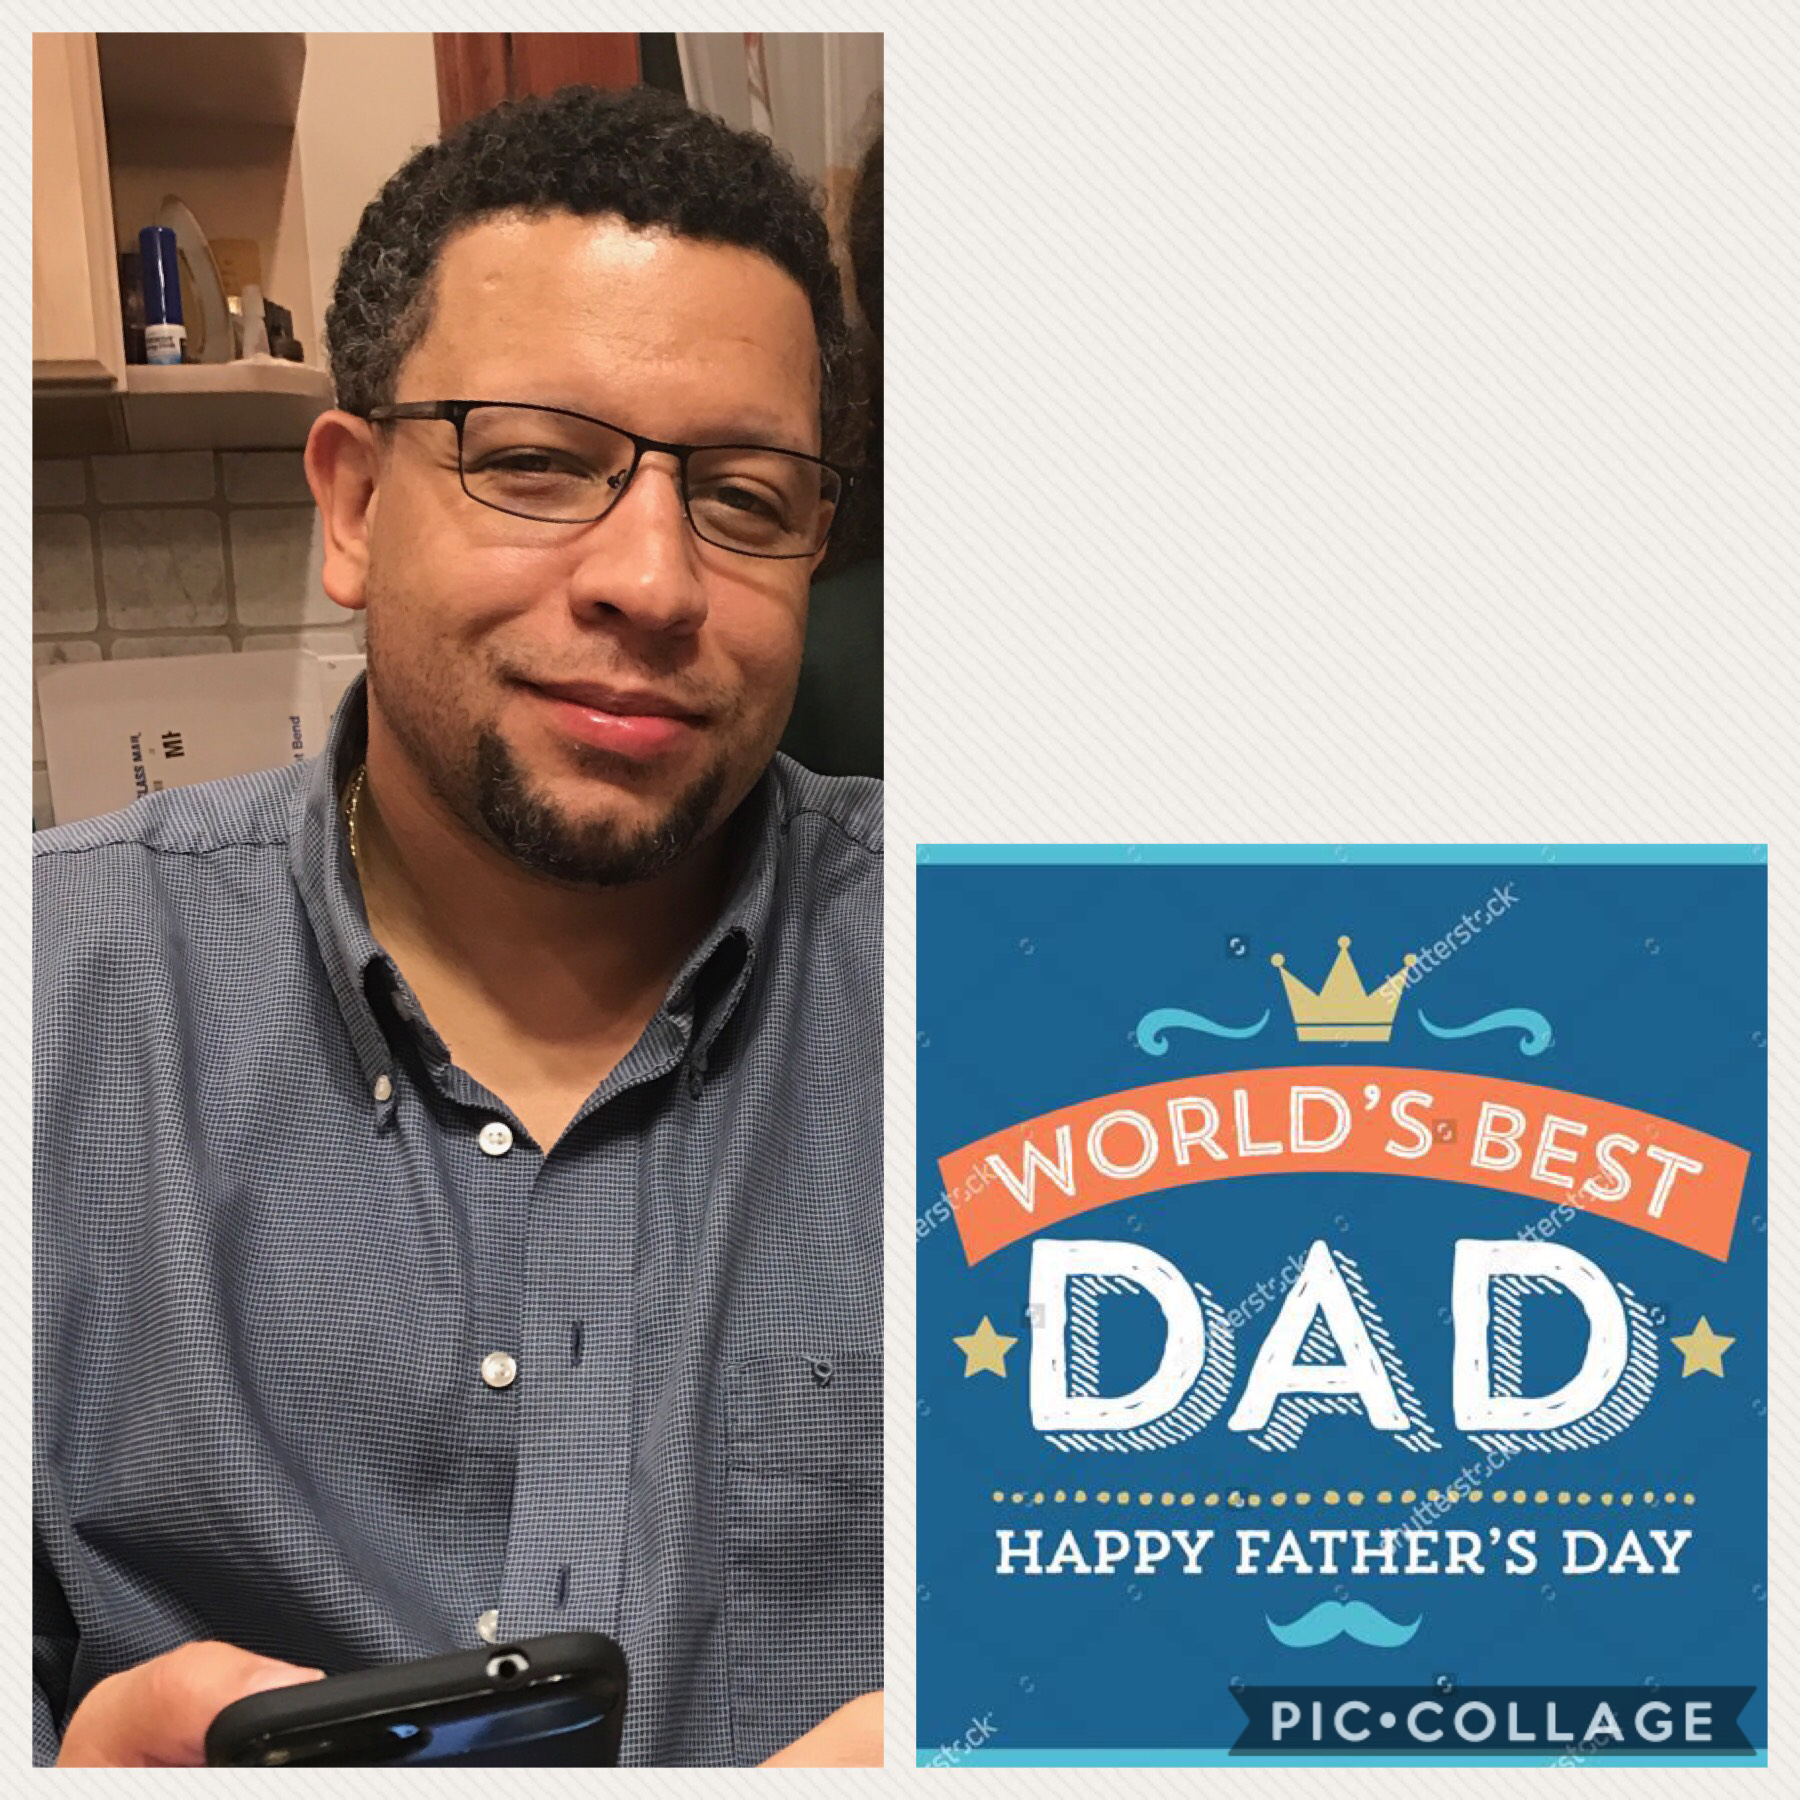 Happy Father's Day to the best dad ever